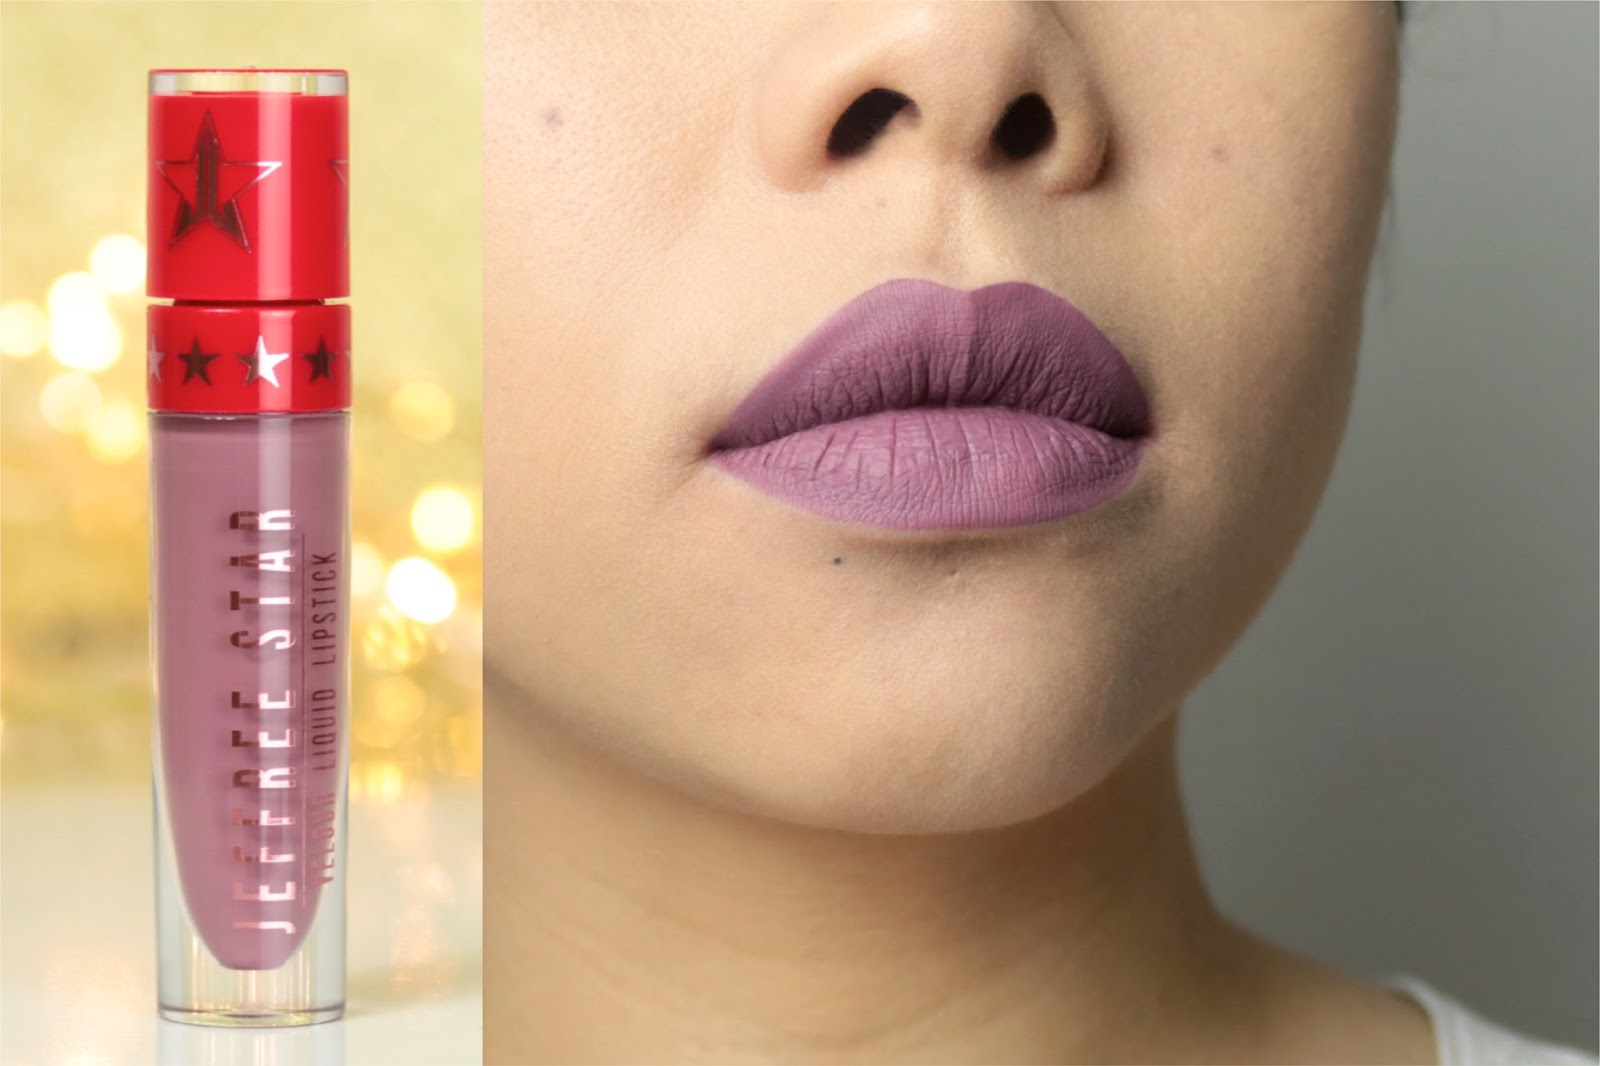 Jeffree Star Velour Liquid Lipsticks | La collection de Noël avis et swatch Sagittarius